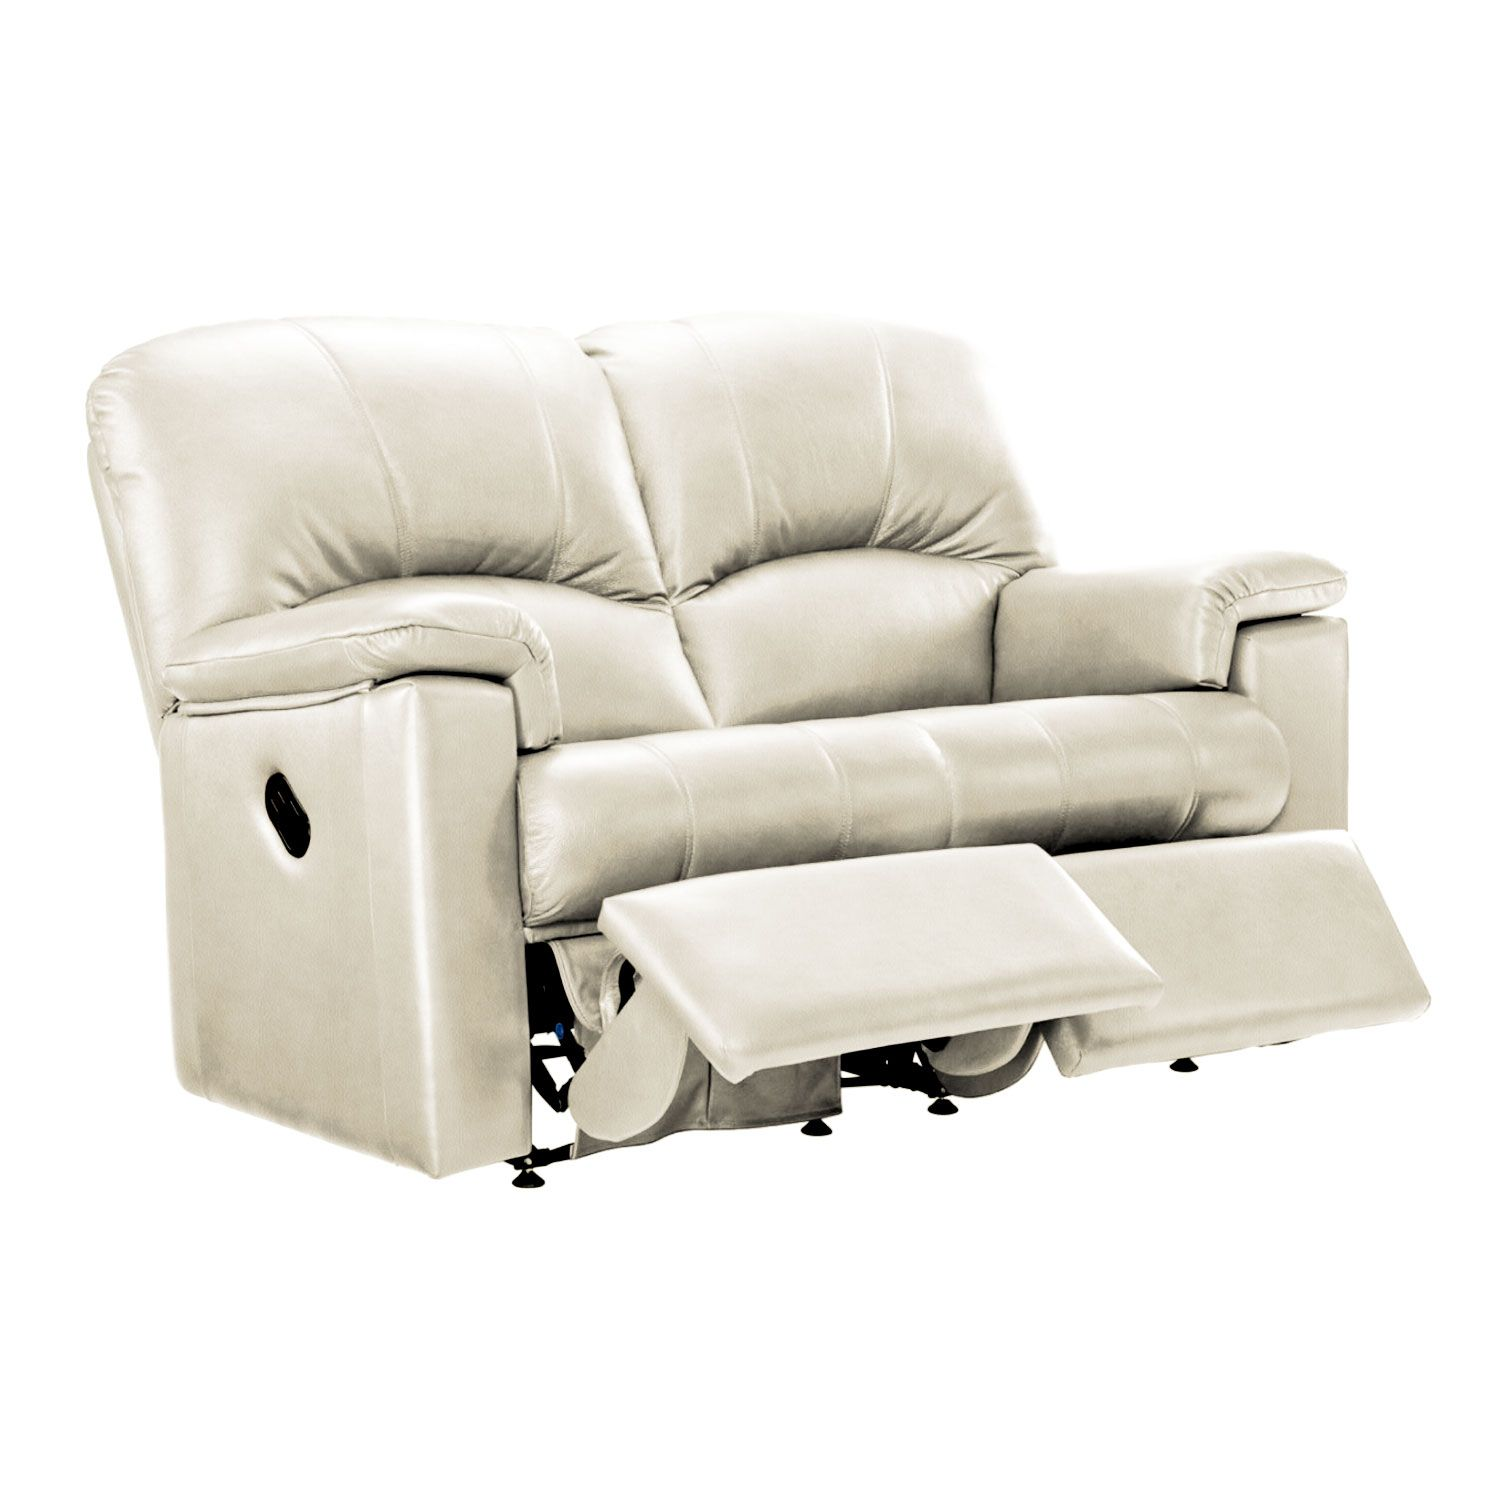 Image of G Plan Chloe 2 Seater Left Manual Recliner Leather Sofa